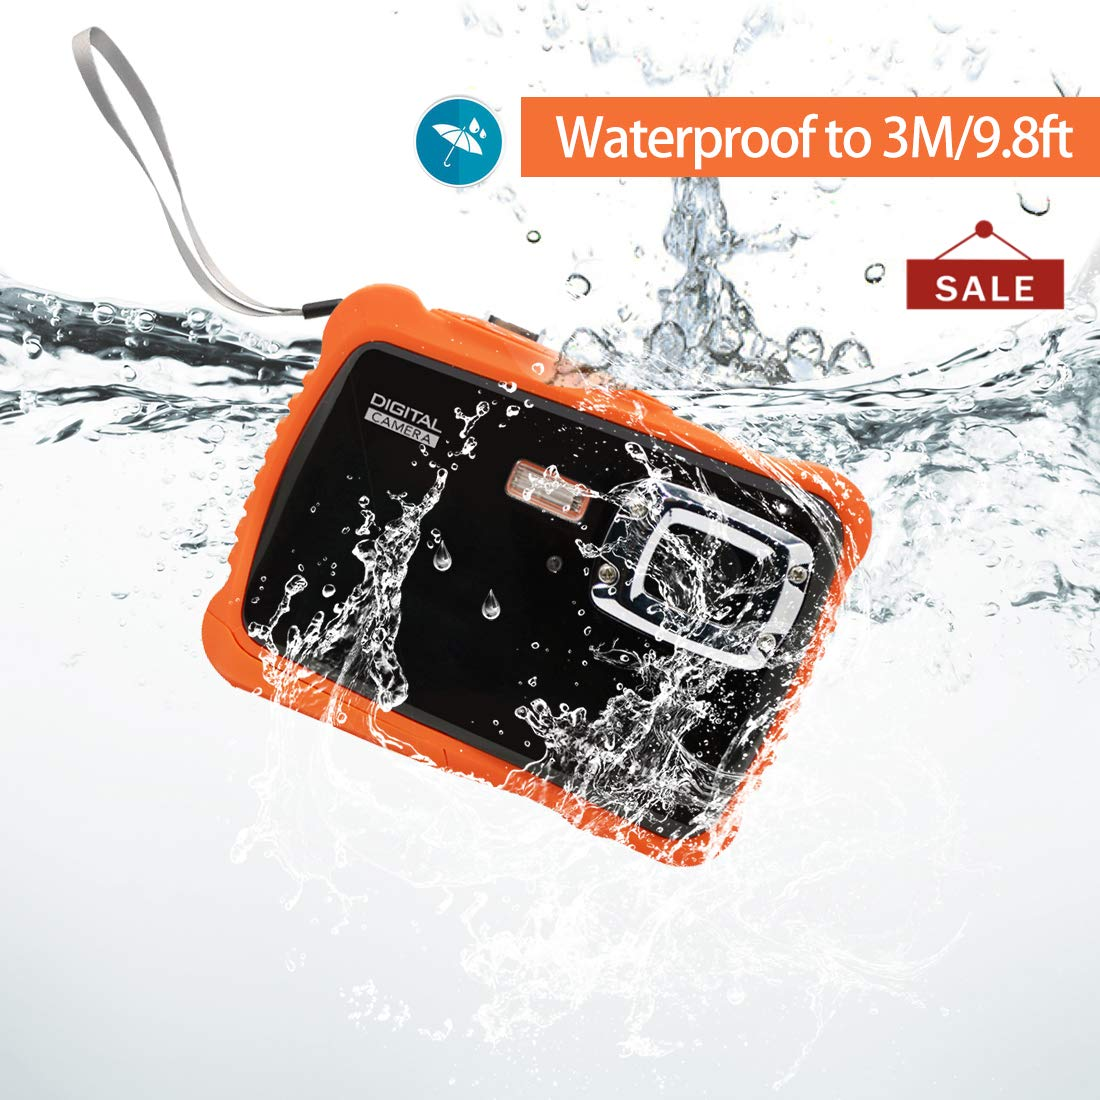 Underwater Action Digital Camera Camcorder for Kids, waterproof 3M/9.8ft, 5 MP CMOS 12MP 1080p, Orange by Oikkei (Image #7)